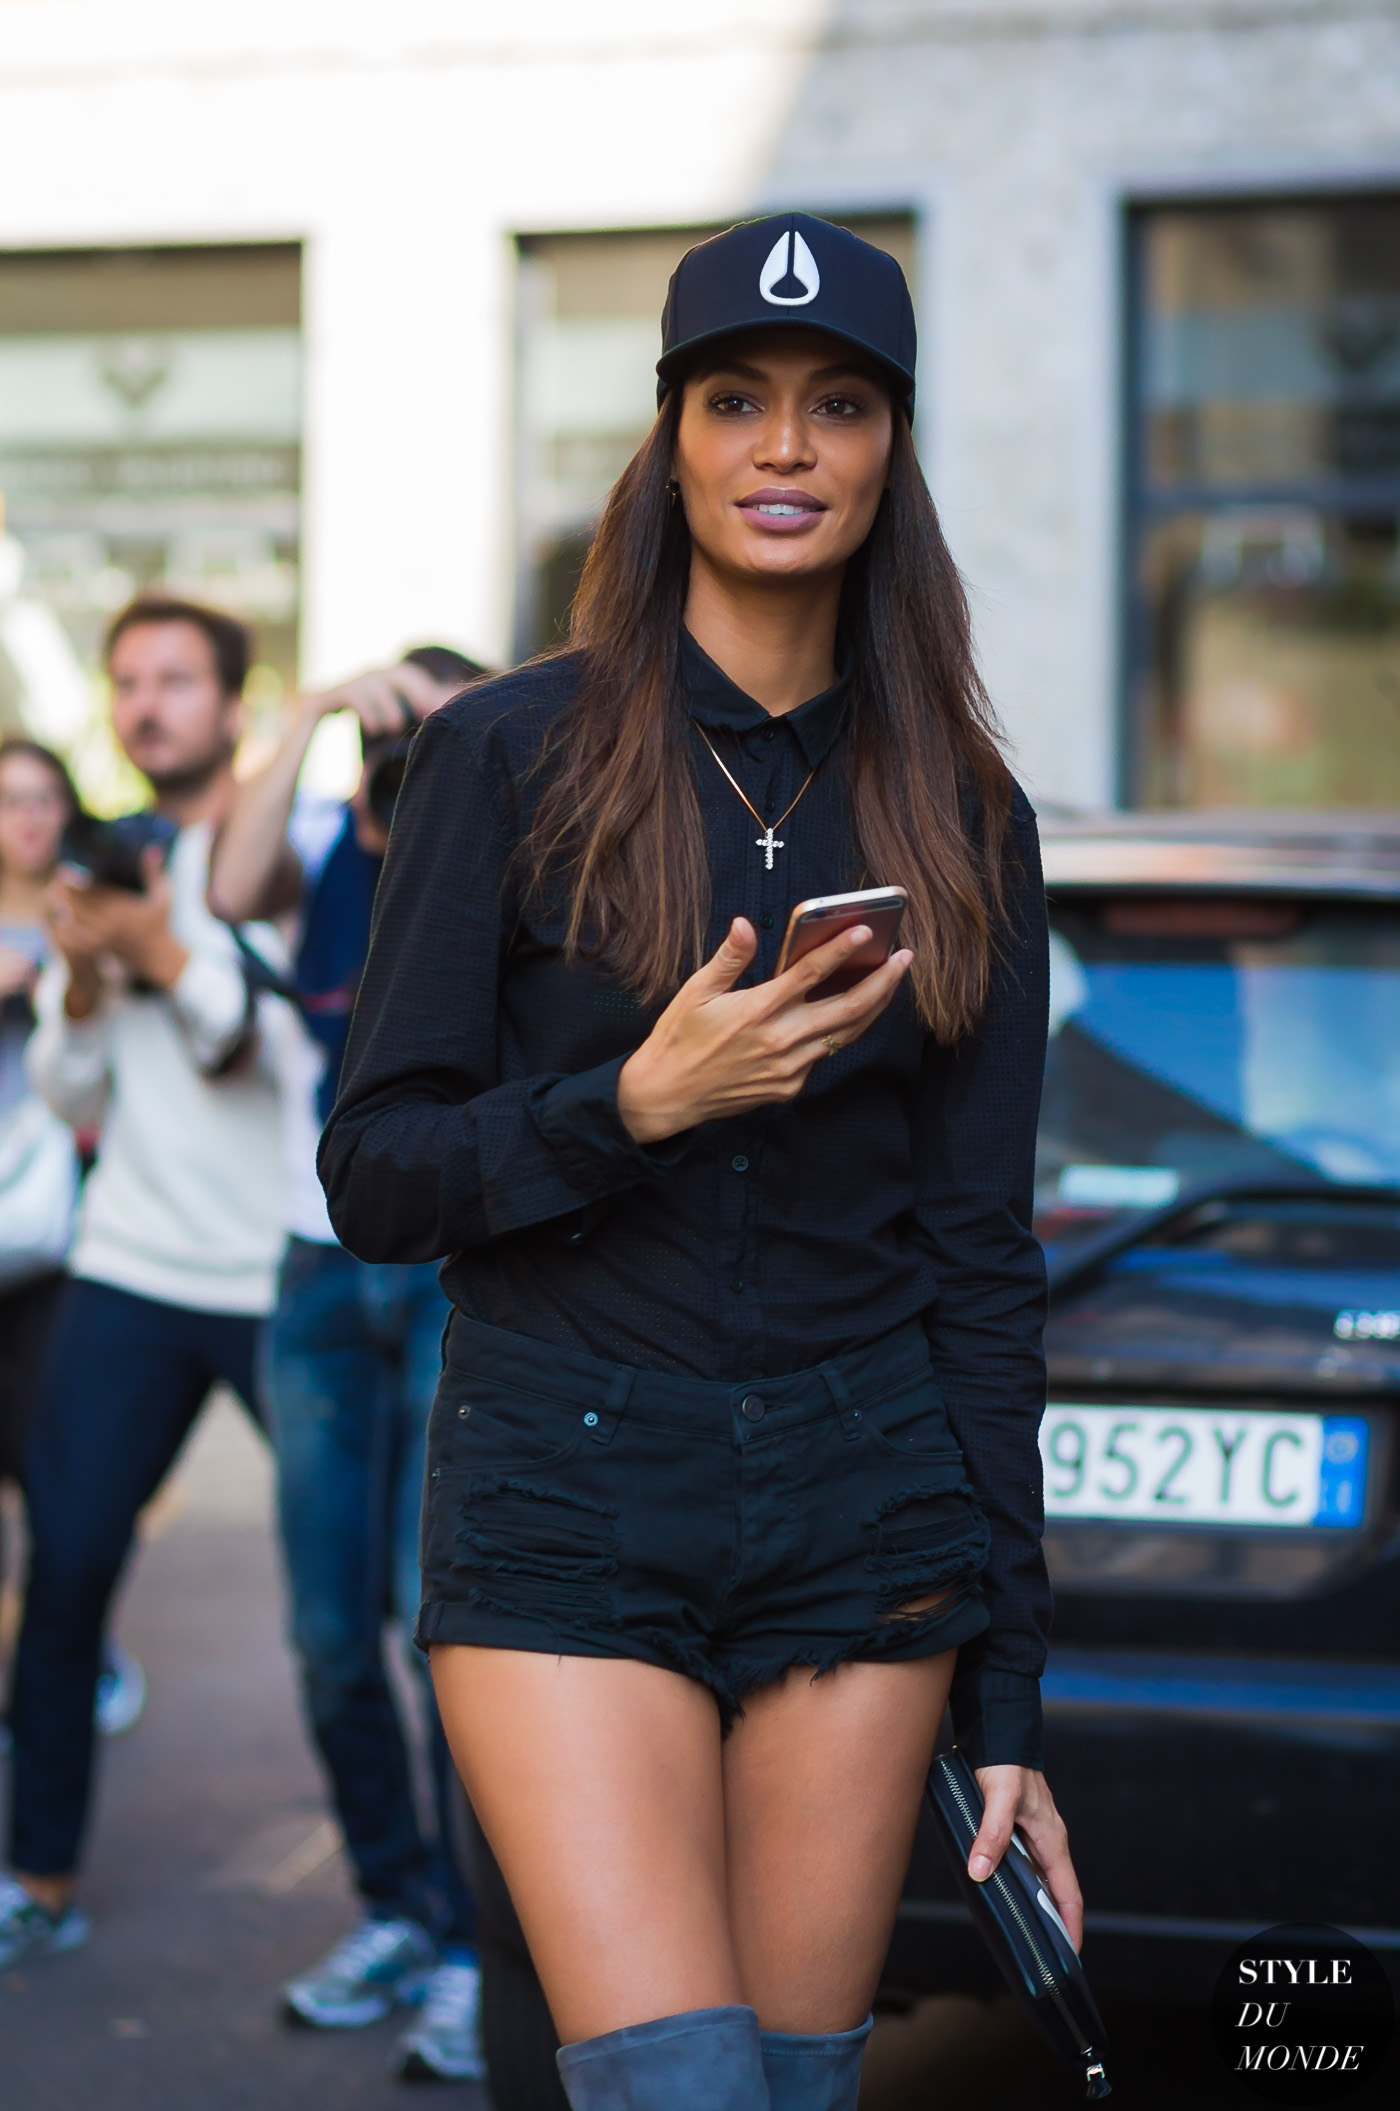 Joan Smalls by STYLEDUMONDE Street Style Fashion Photography0E2A8975